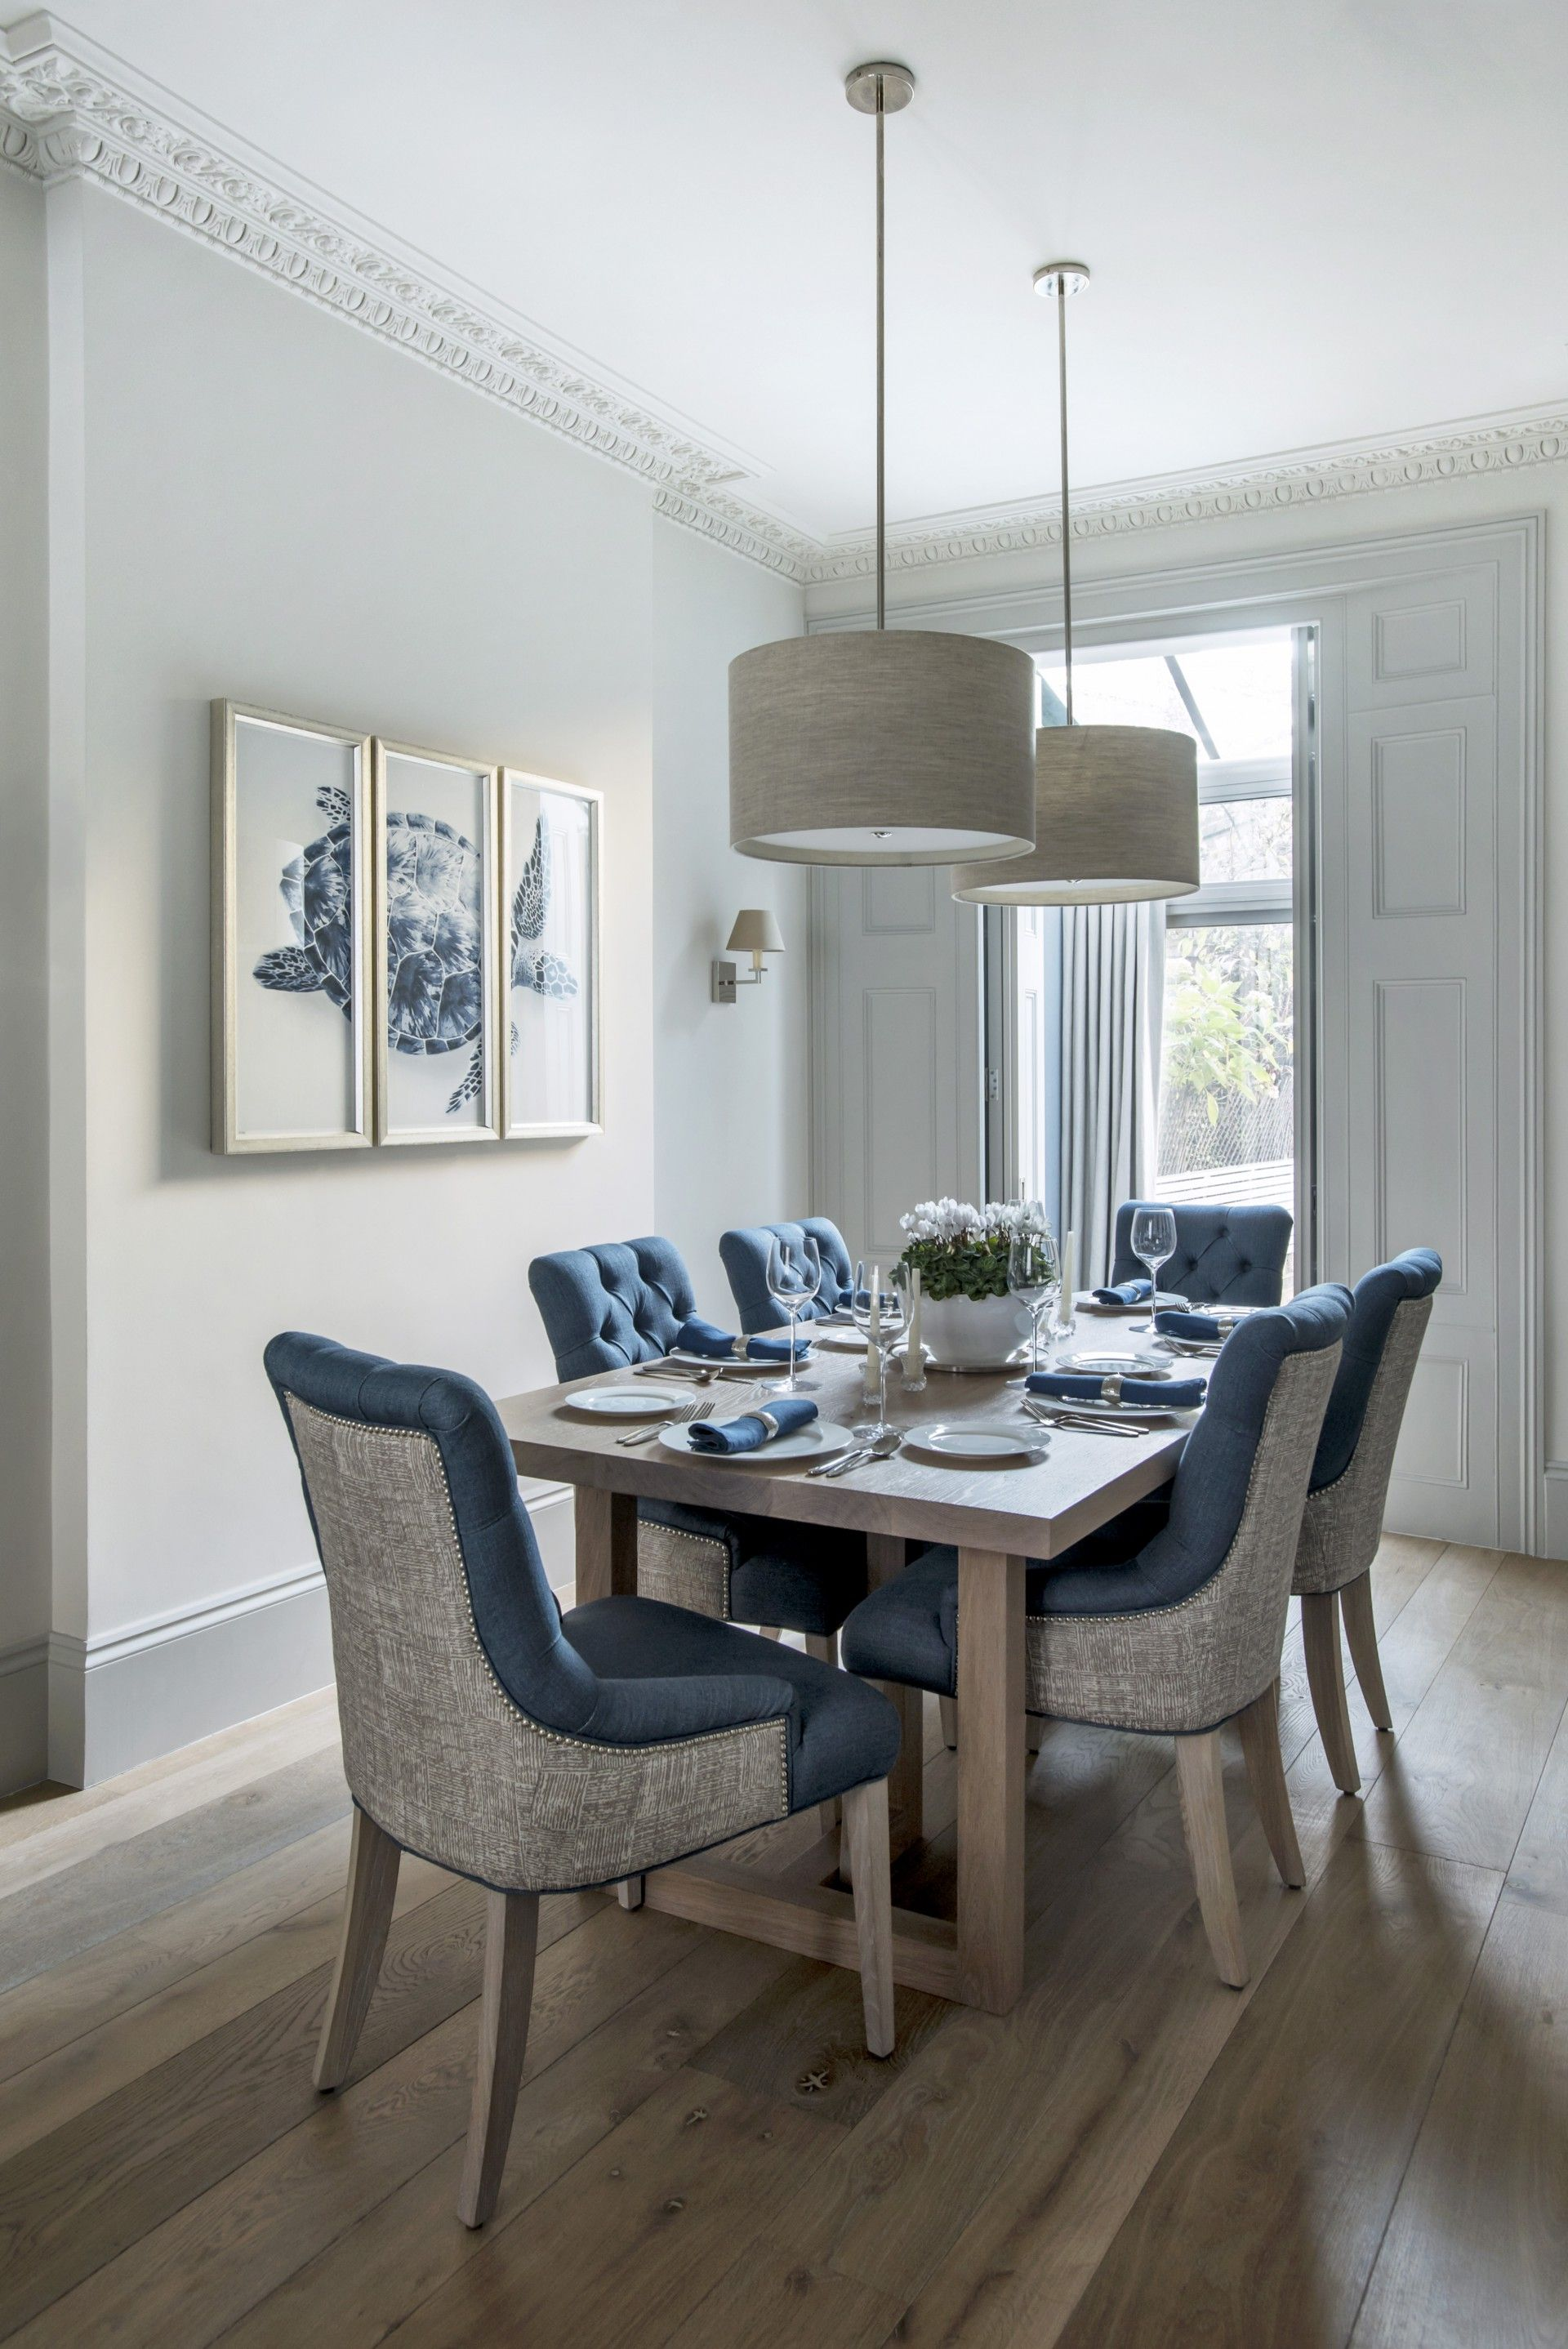 Country Living In The City With Sims Hilditch Dining Room Blue